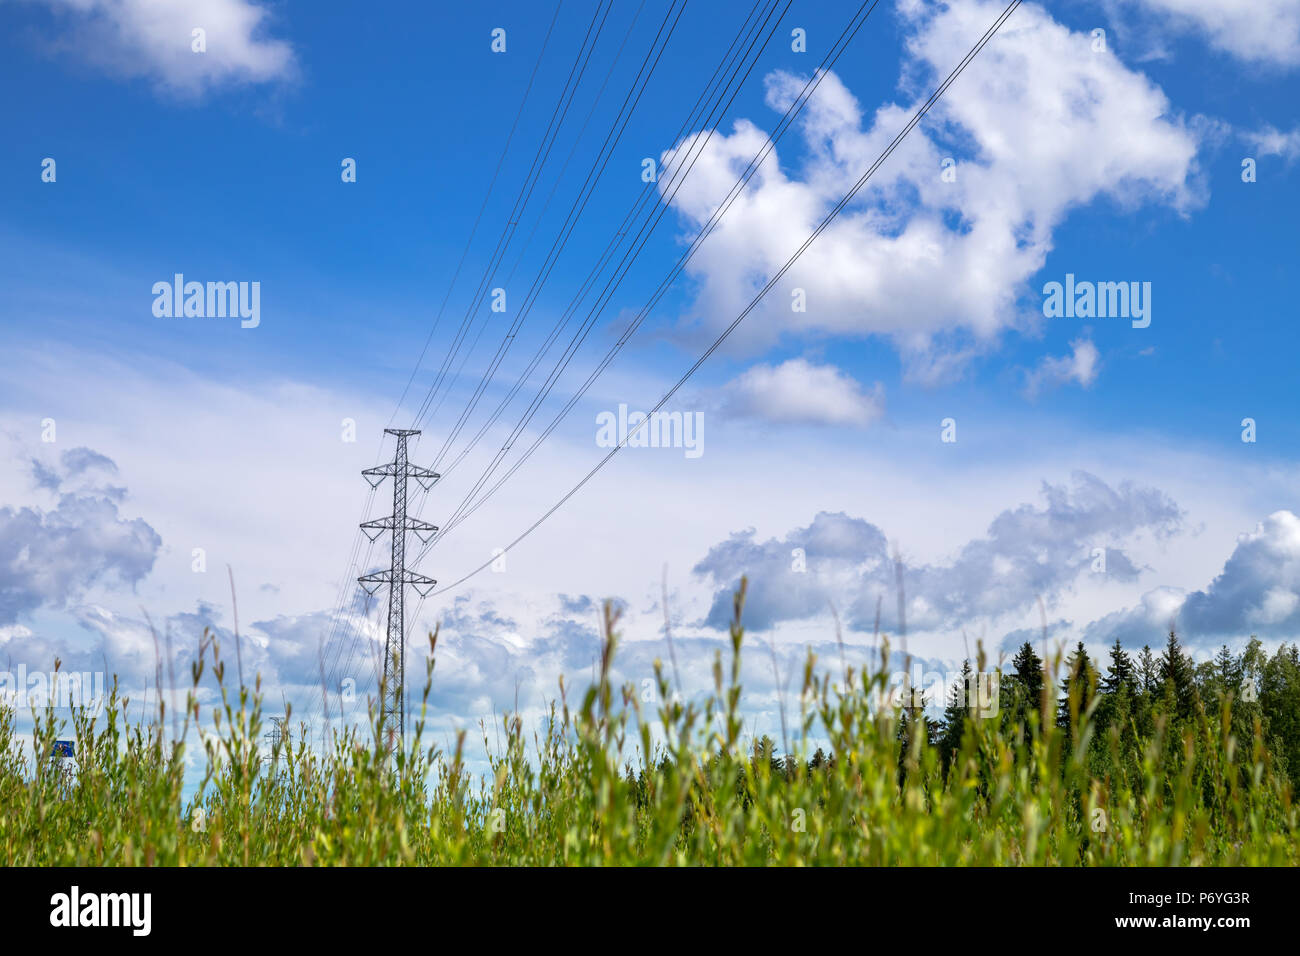 Electric powerlines and pylon behind green grass on sunny summer day - Stock Image